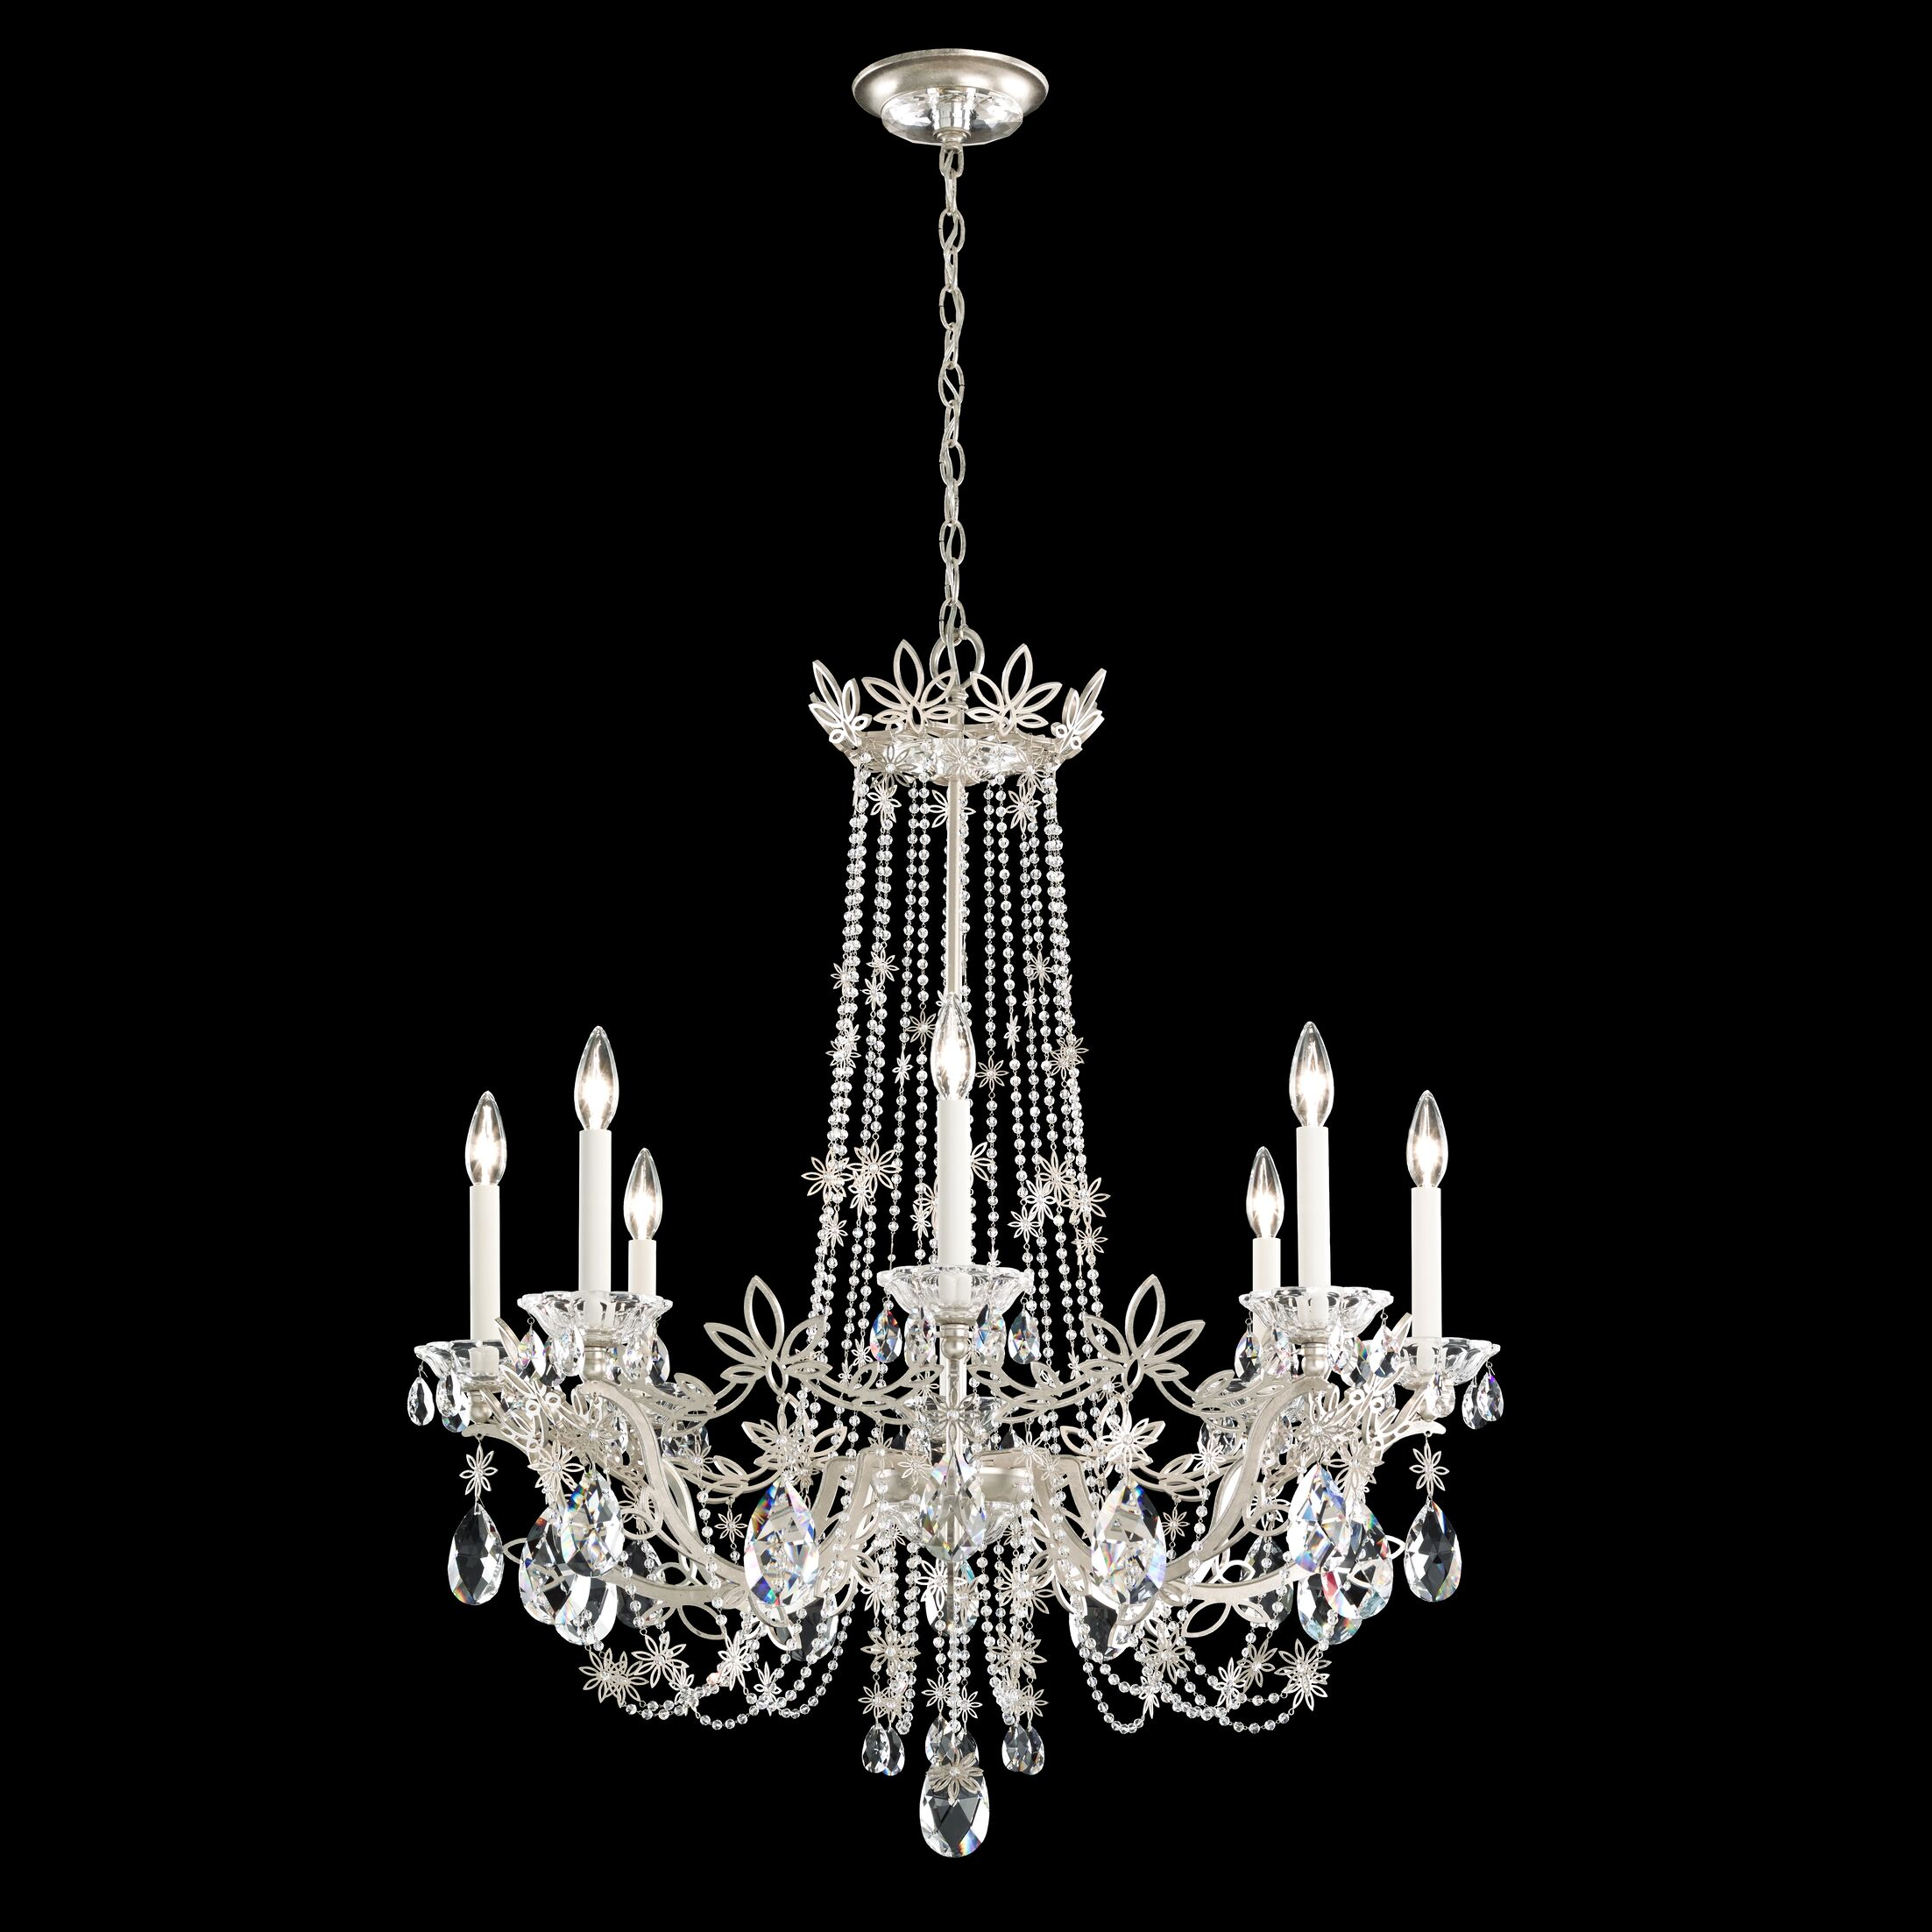 Florabella 8-Light Chandelier Crystal Grade: Heritage, Finish: Antique Silver